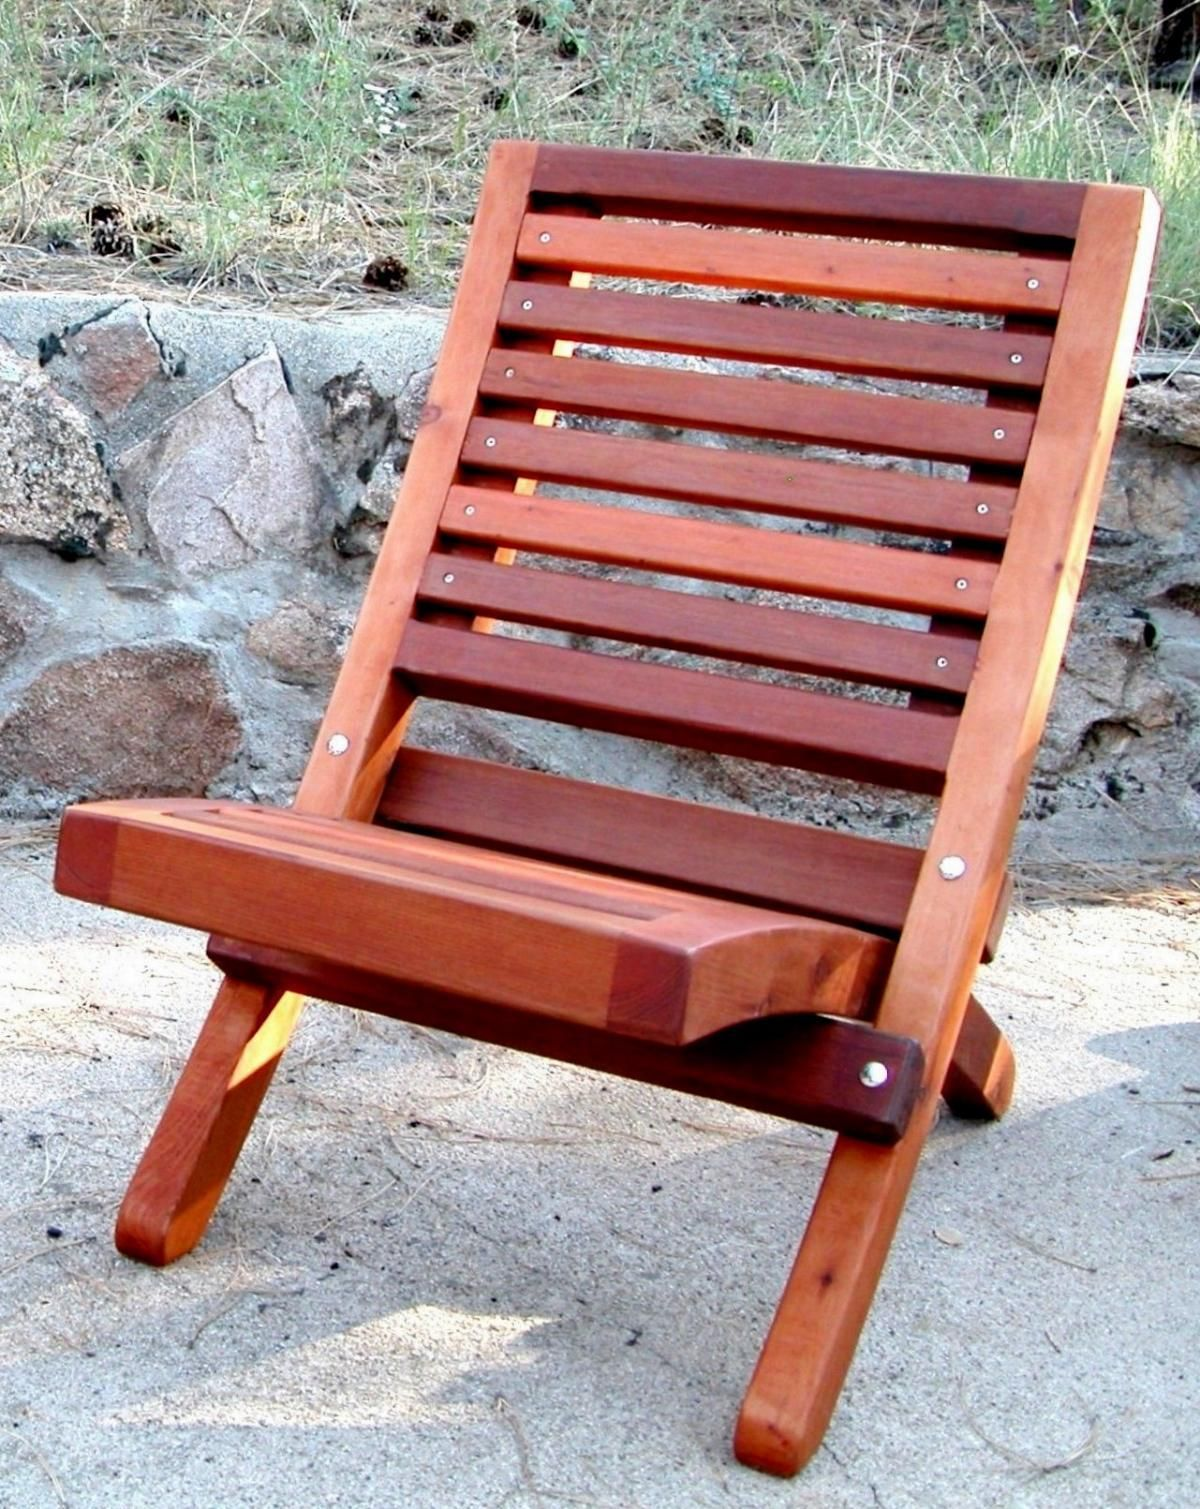 Sillones Plegables Terraza Portable Beach Chair Options Old Growth Redwood